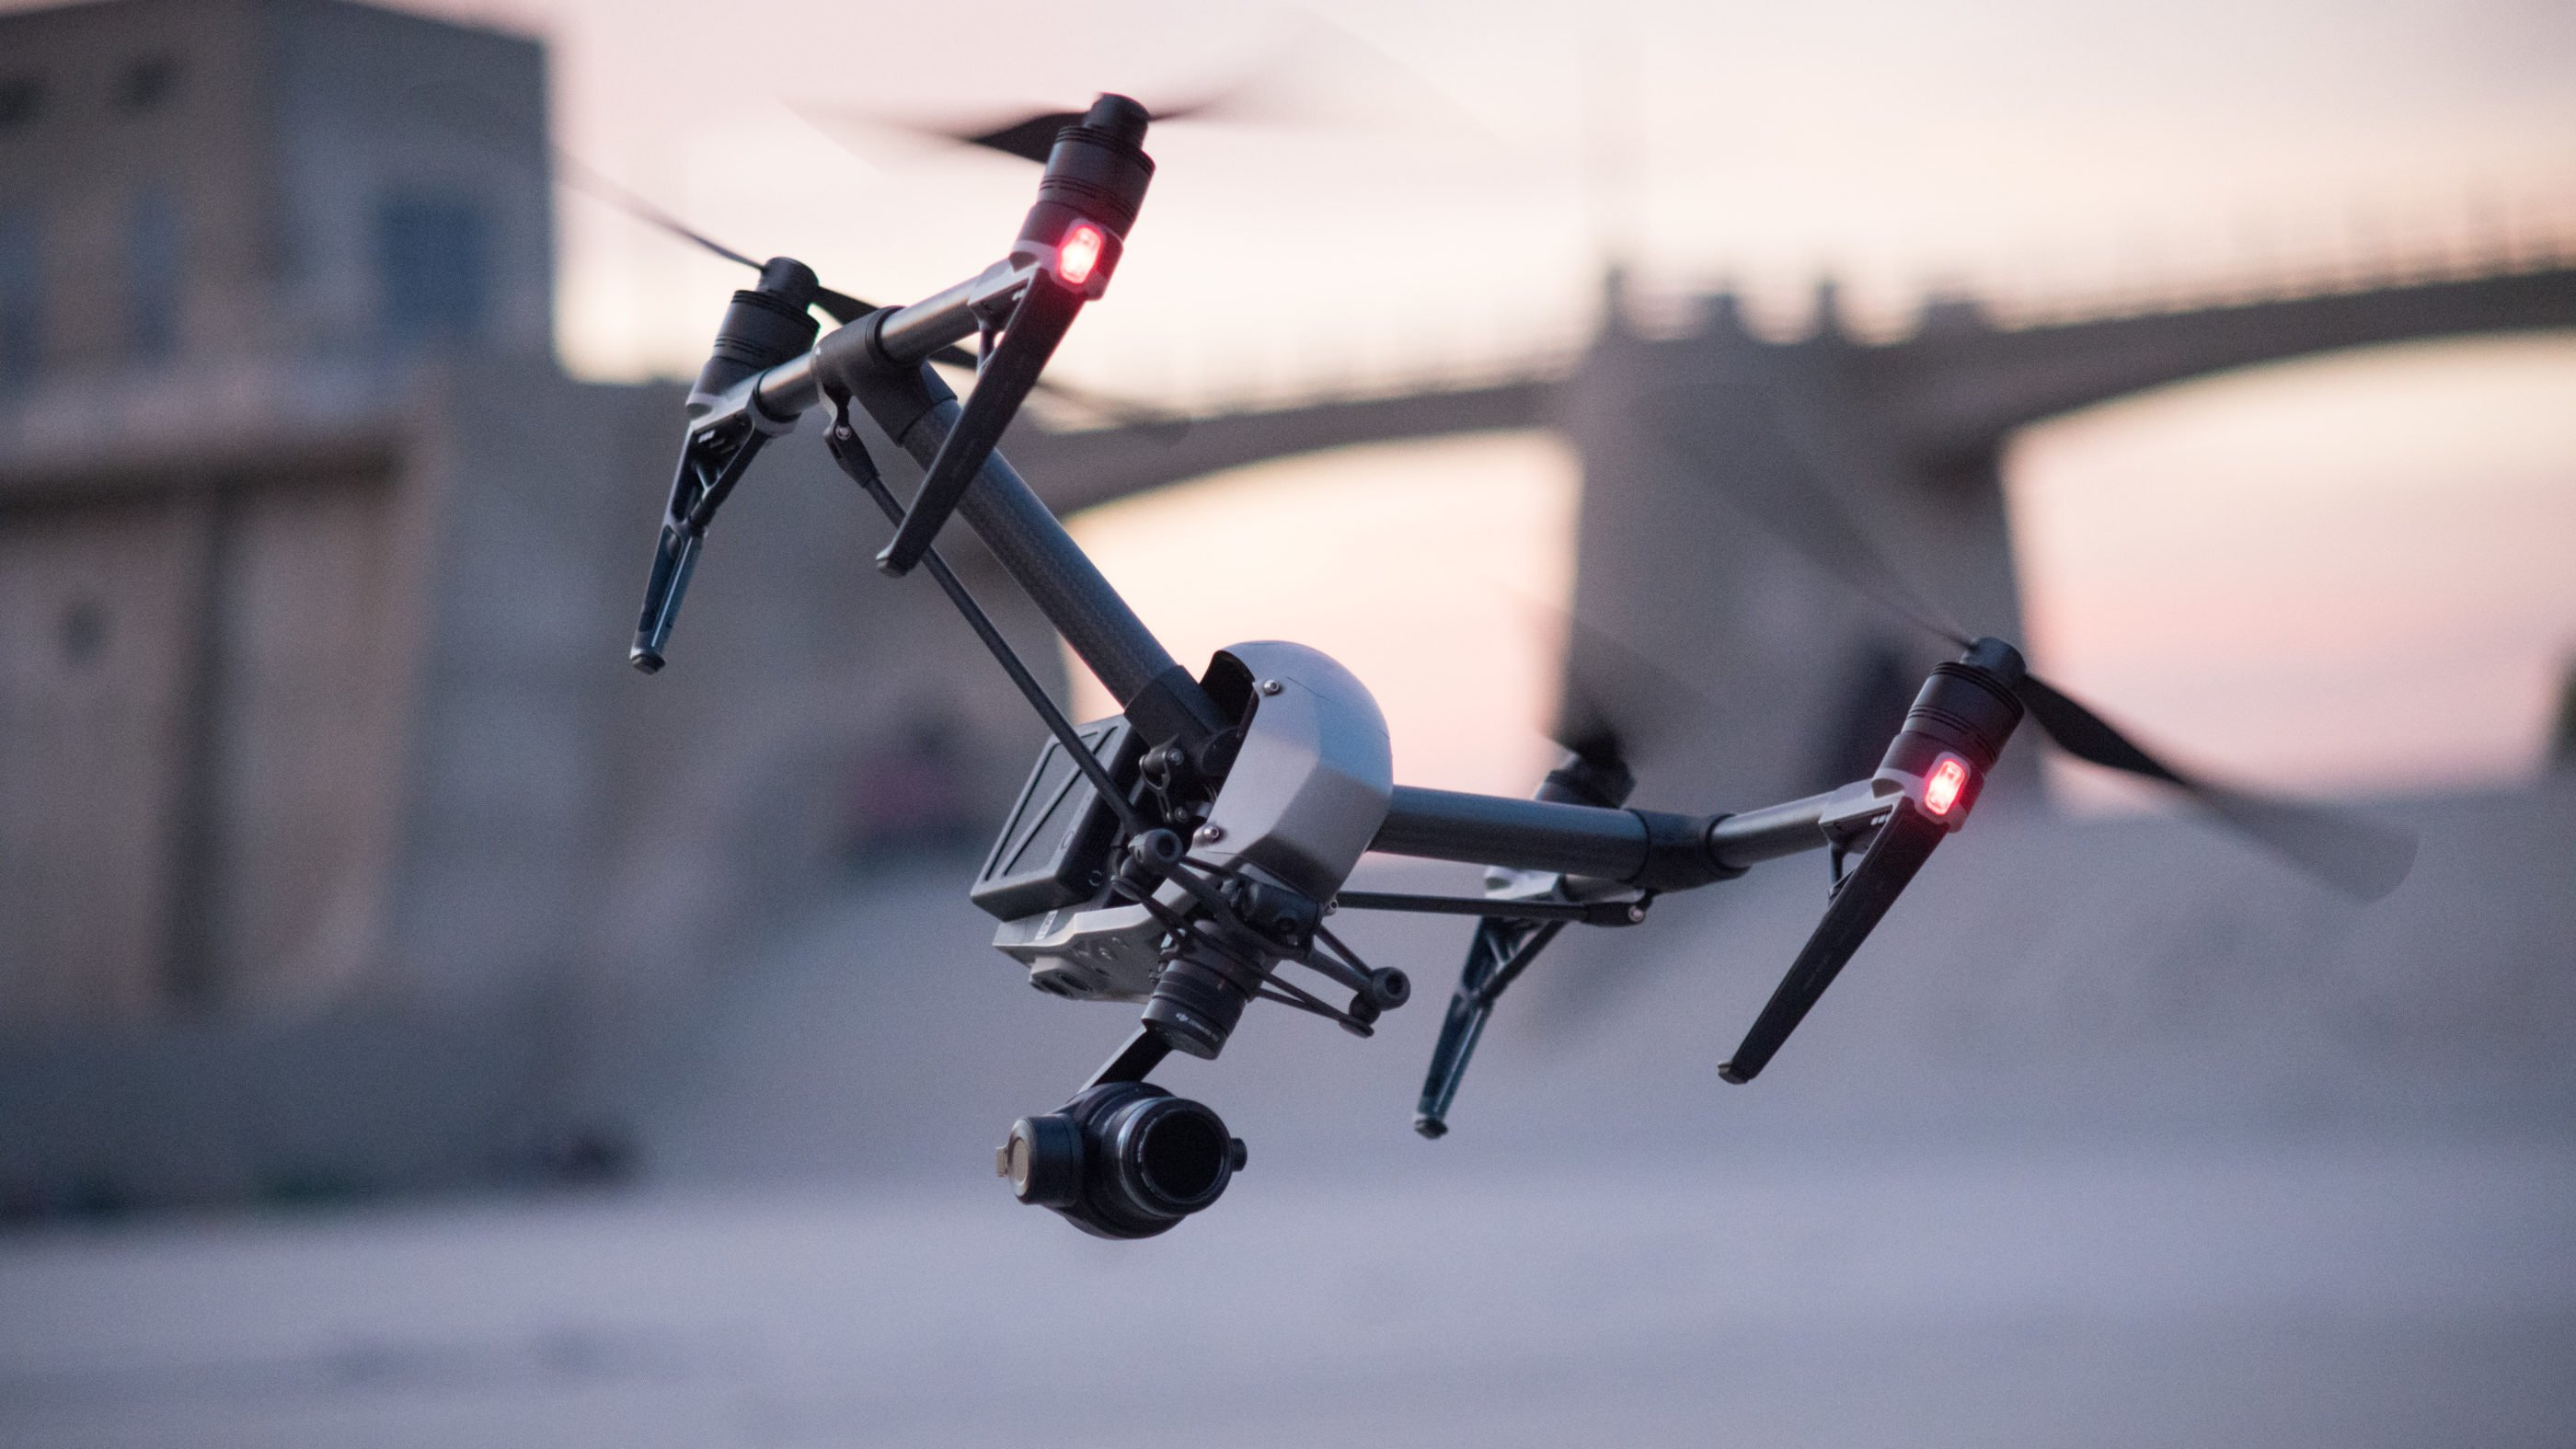 DJI's 2020 Drones Include Aircraft Detection System